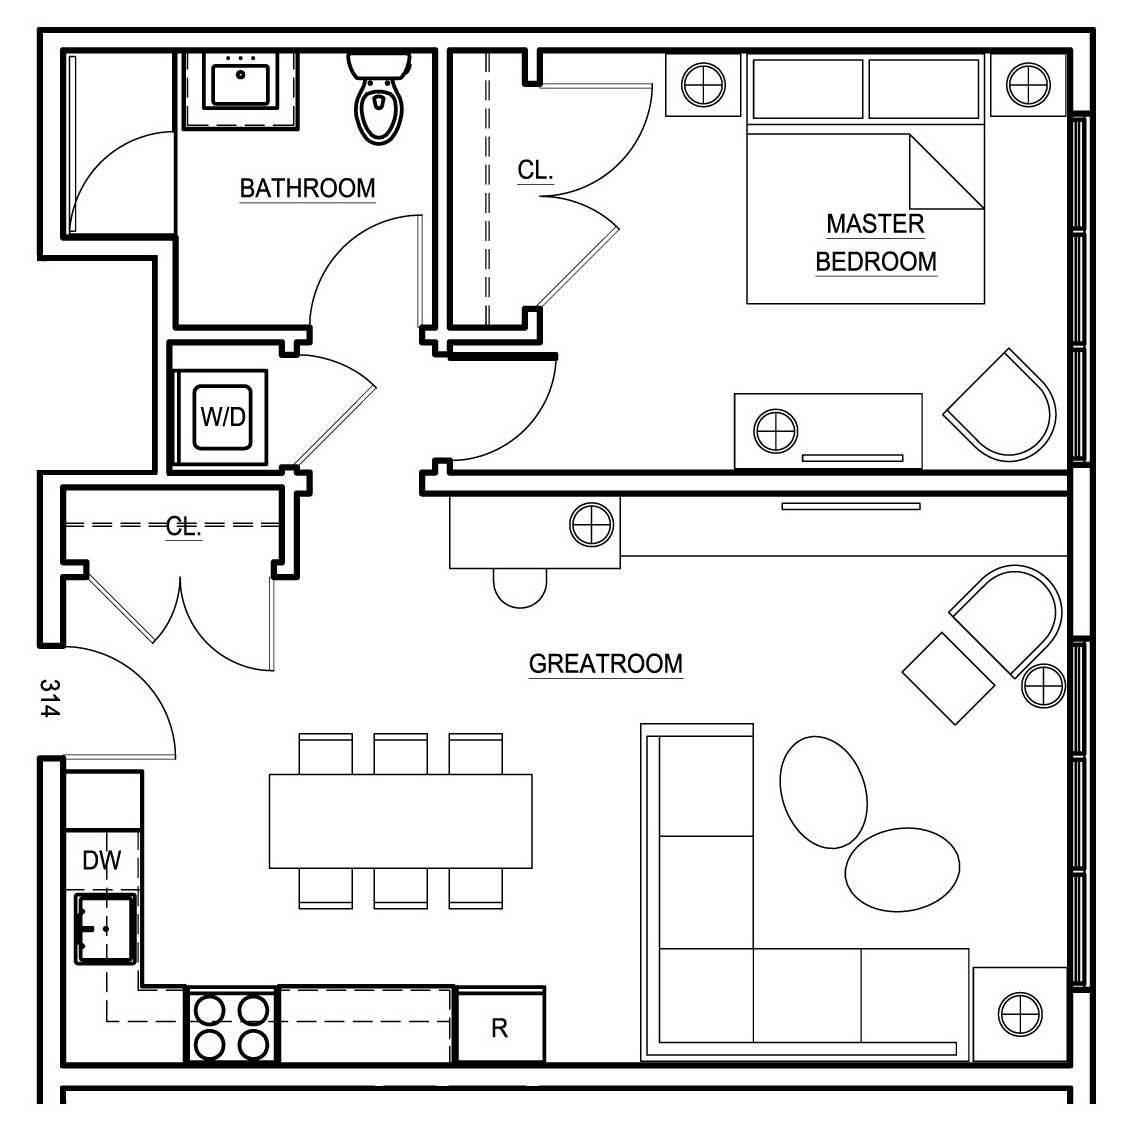 100 master bedroom ensuite floor plans erco homes plans grandin a explorer discovery Ensuite bathroom design layout